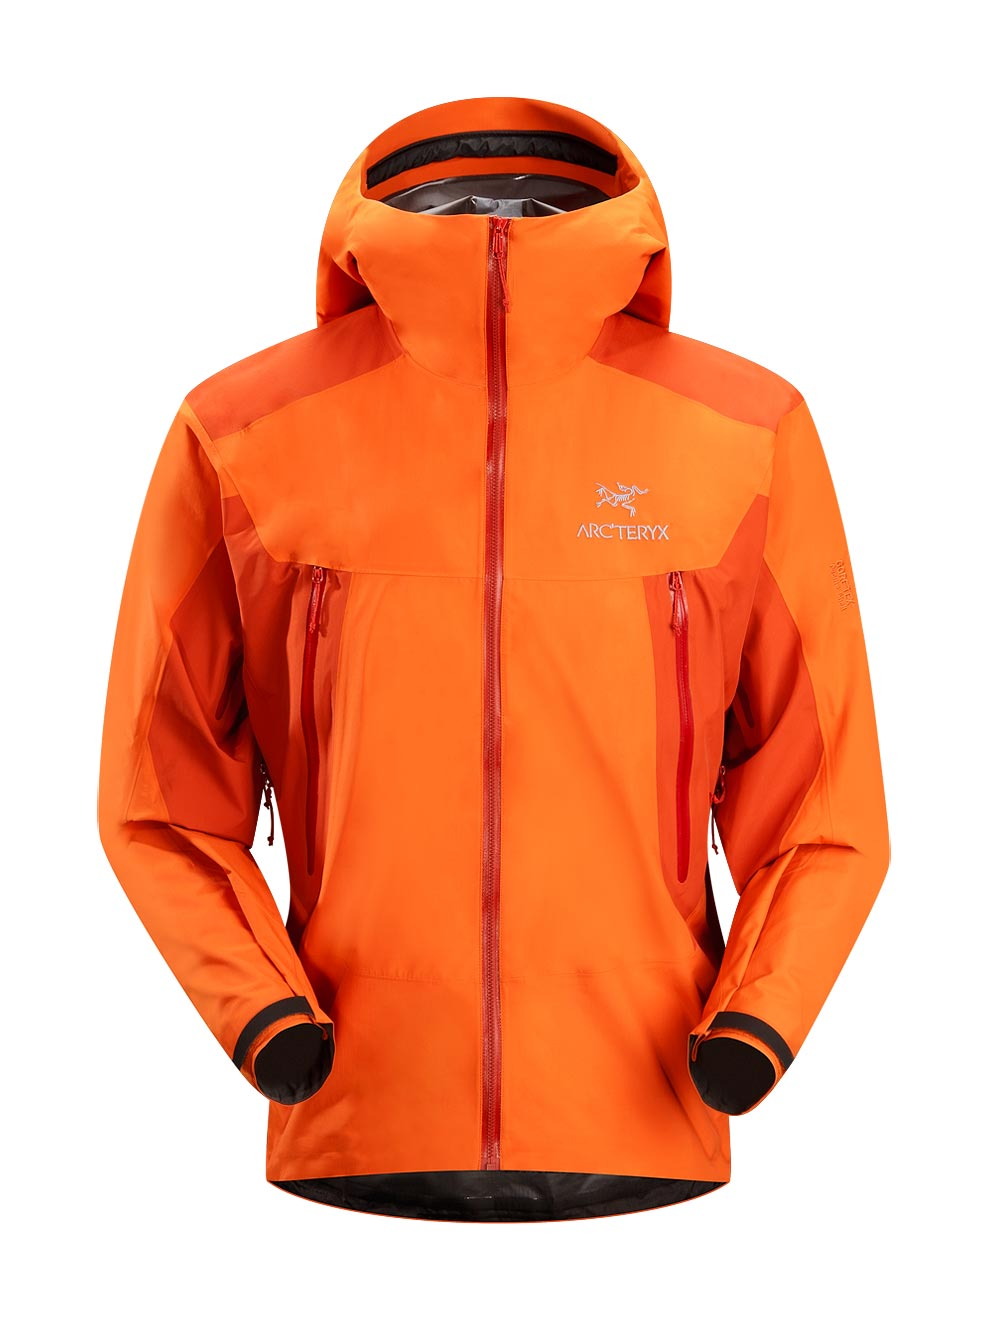 Arcteryx Jackets Men Naranja Alpha SL Hybrid Jacket - New